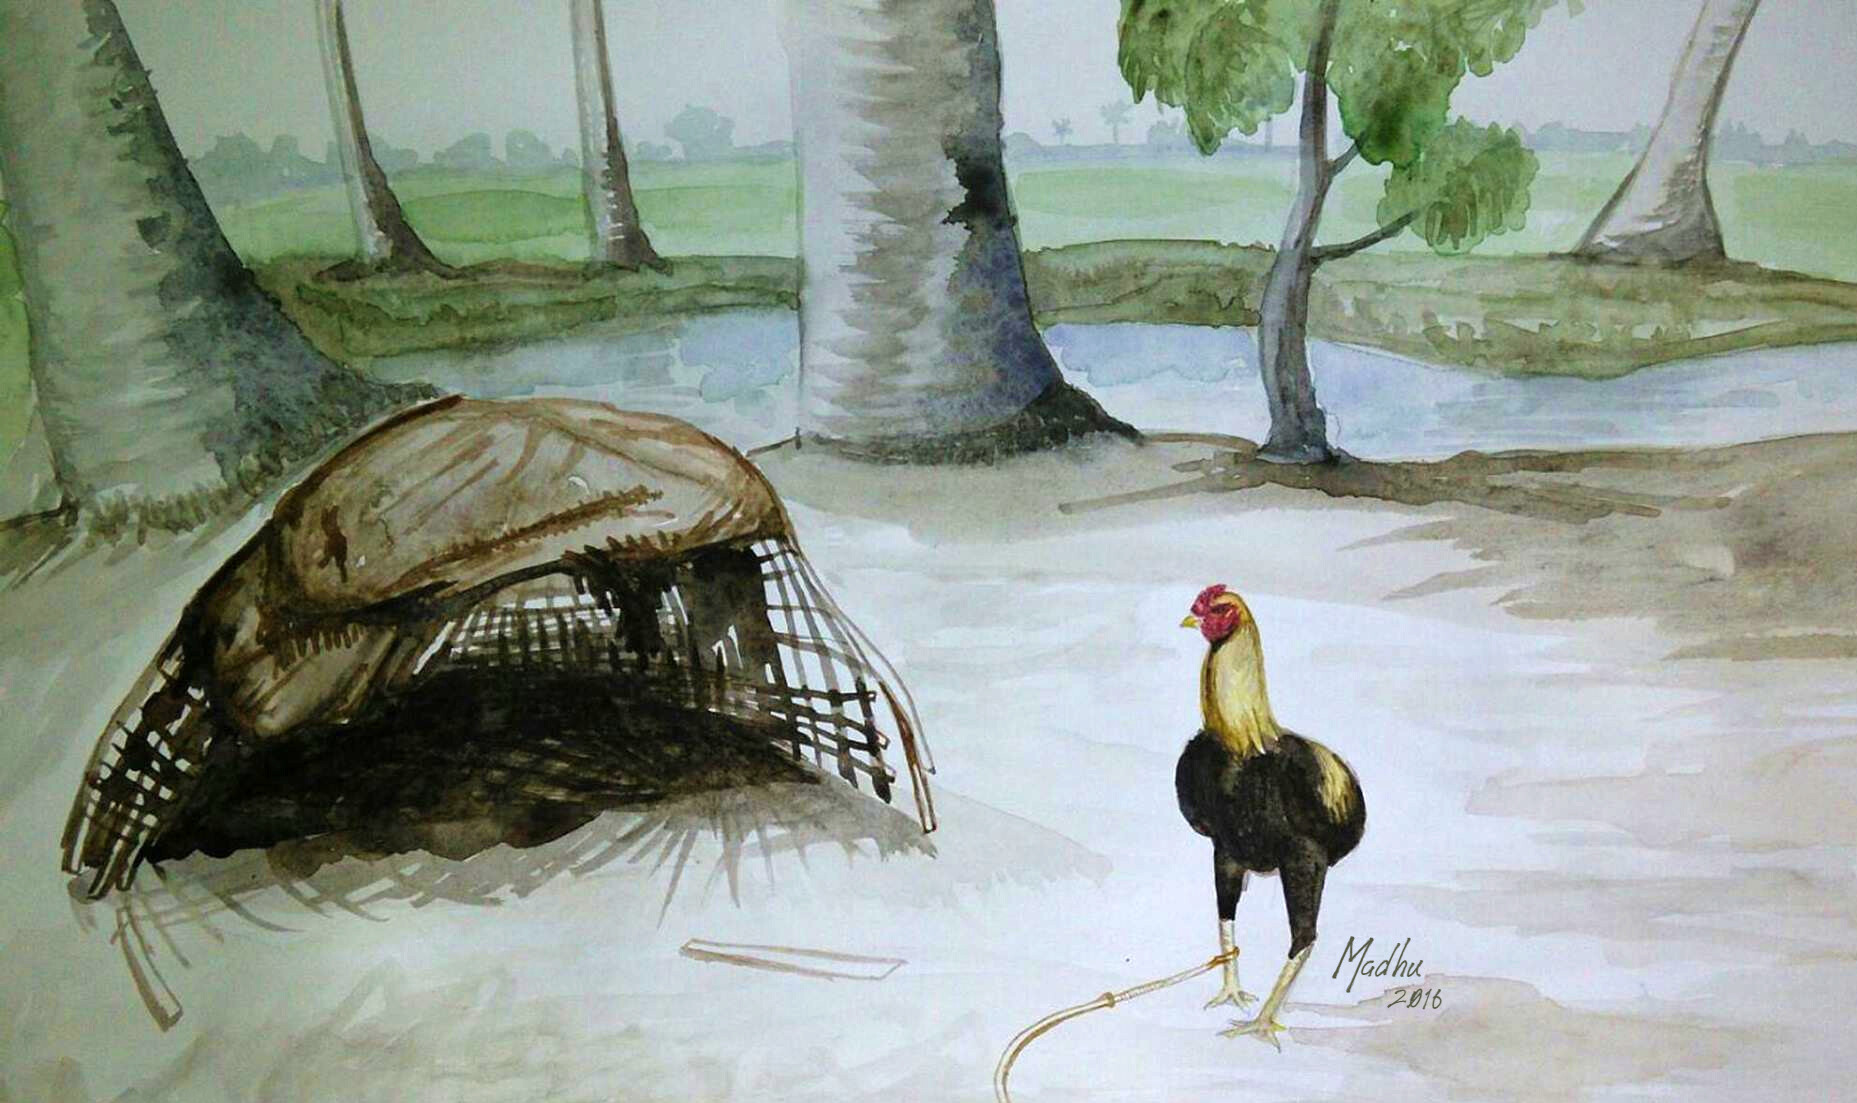 Cock - Water colors on paper